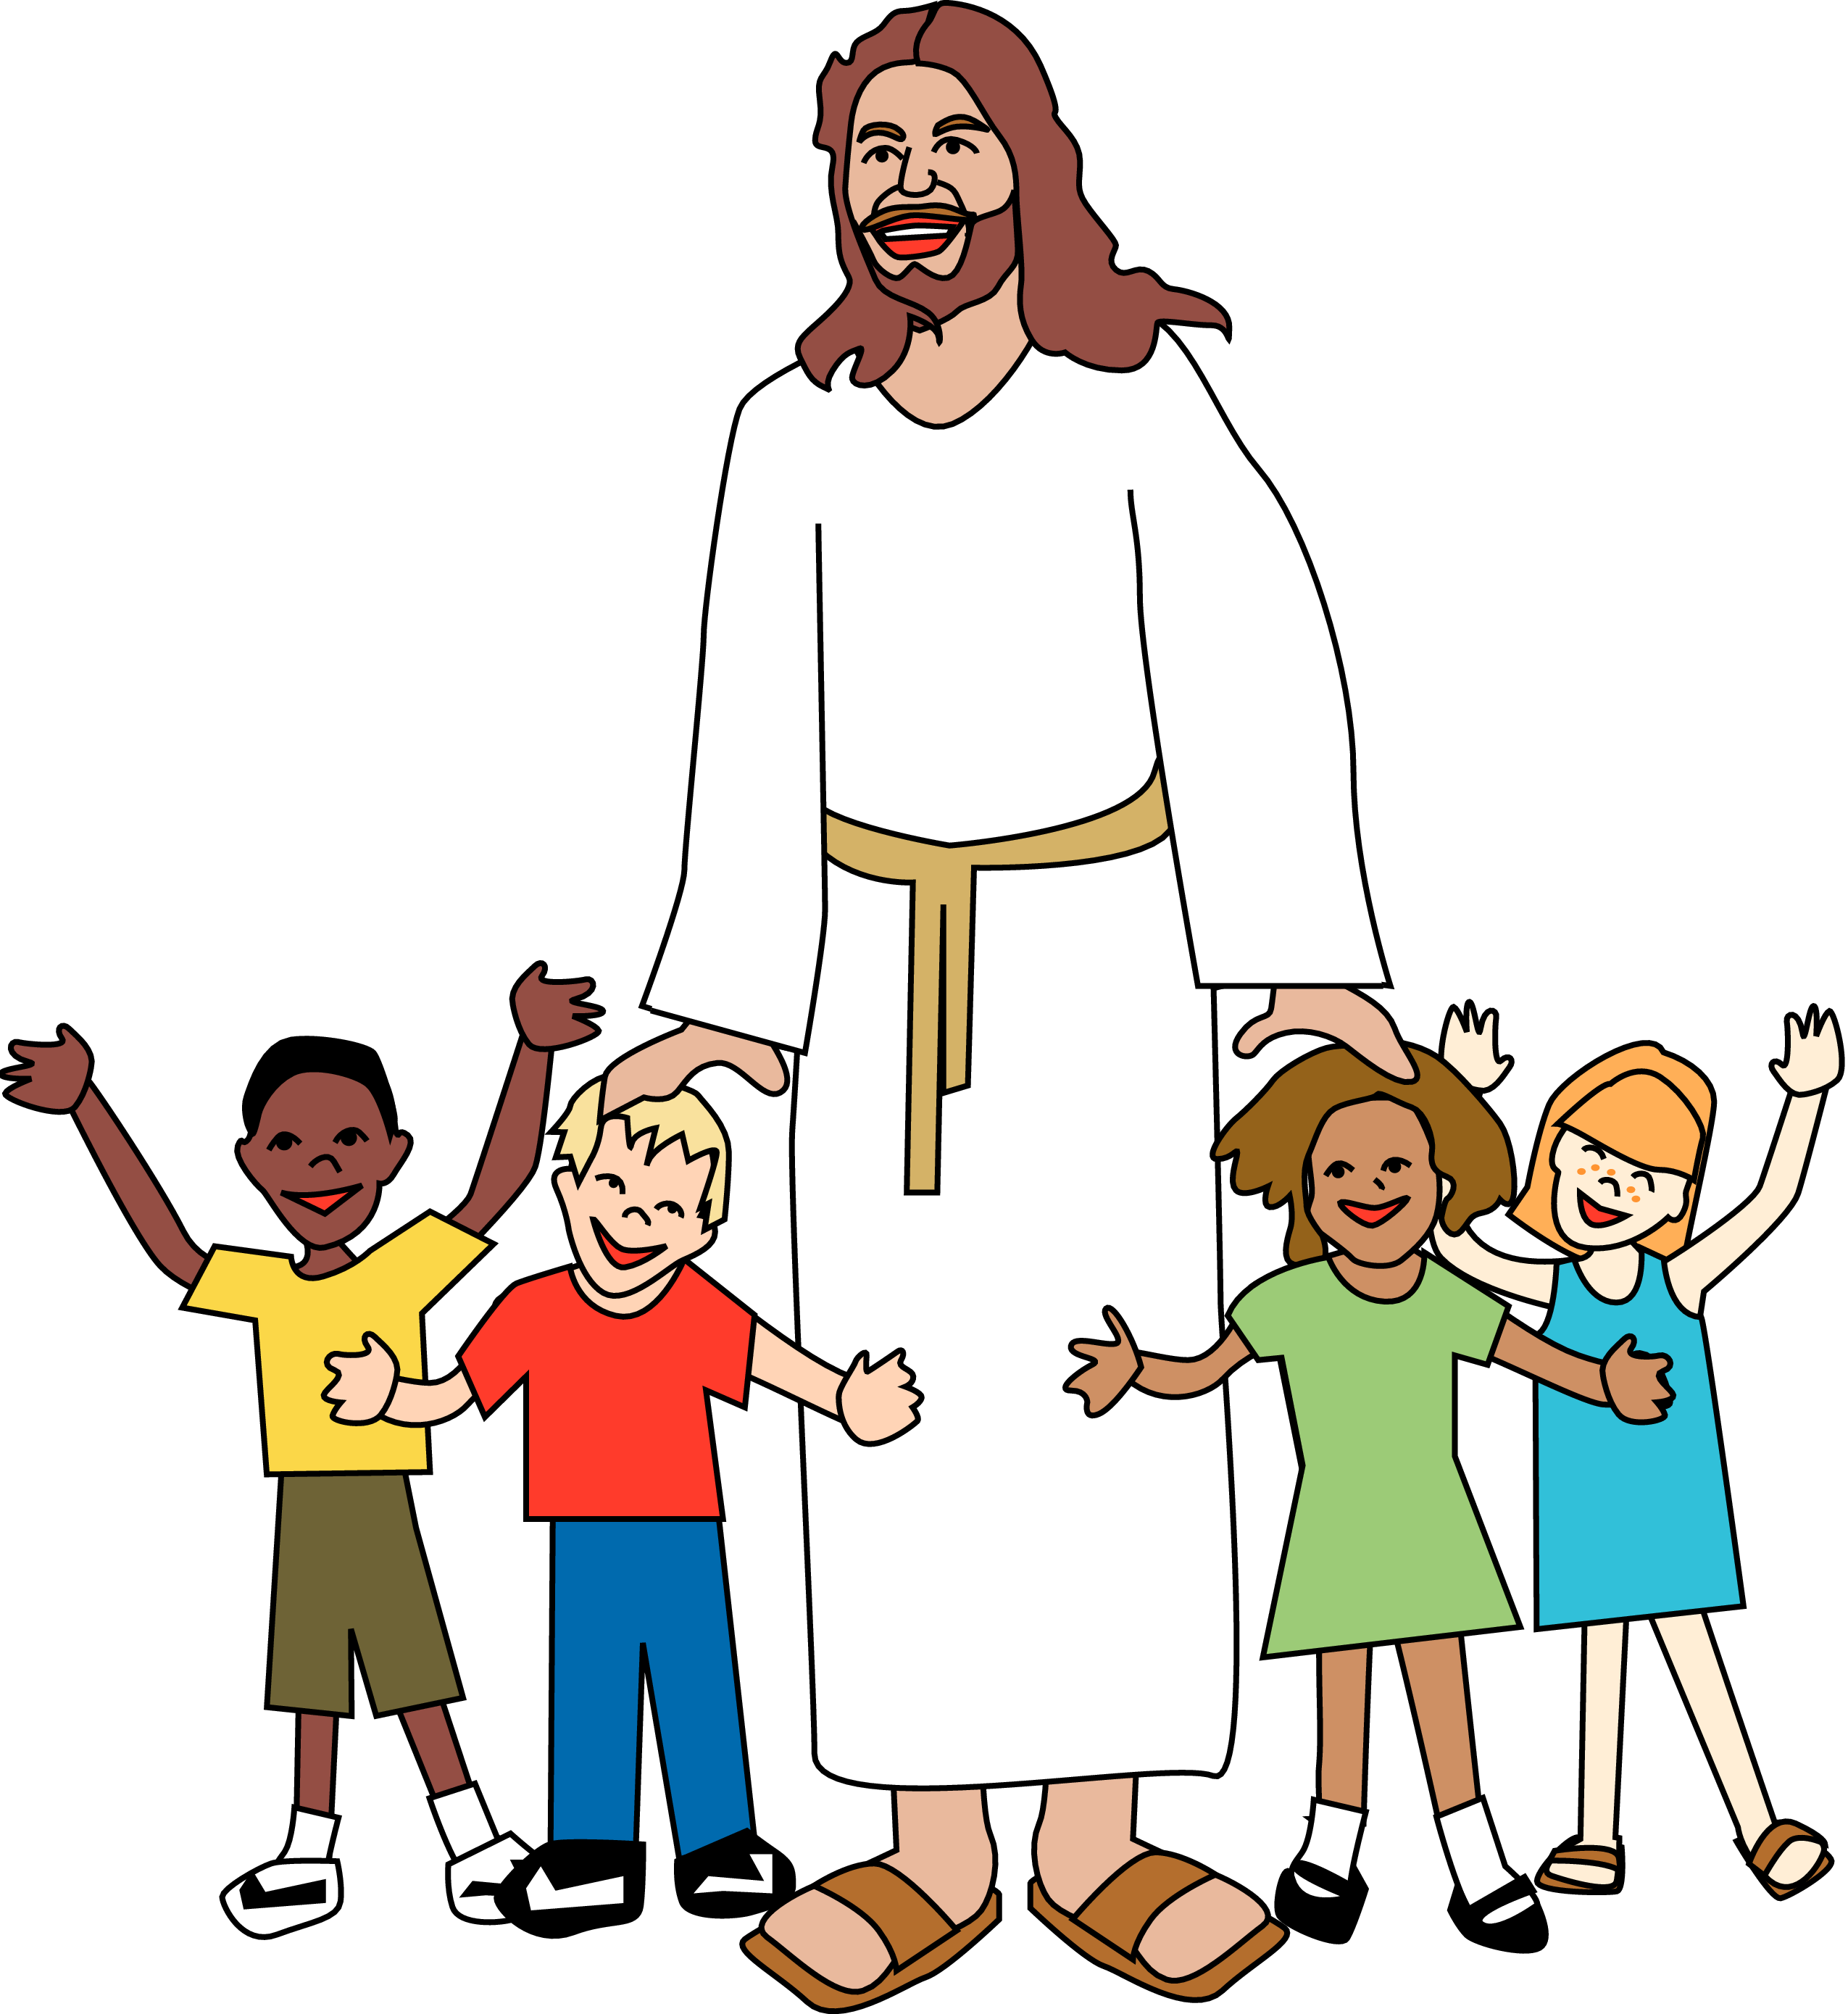 Jesus and children png. With clipart at getdrawings